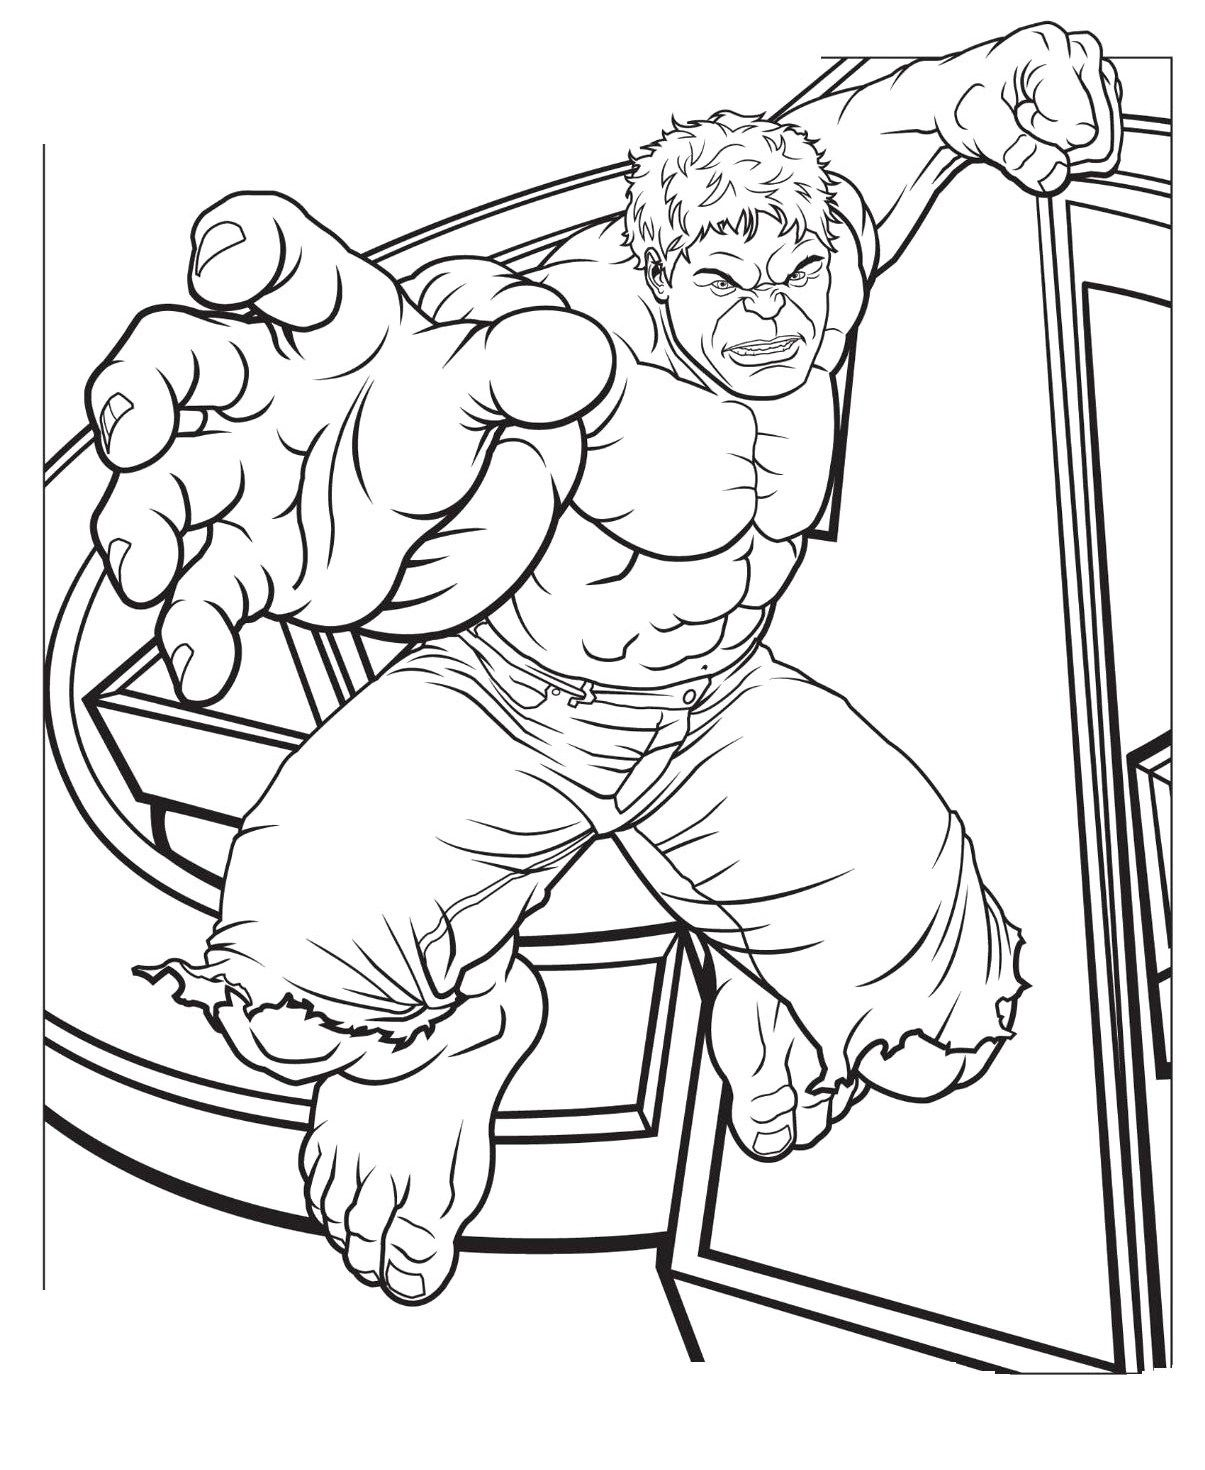 hulk jump coloring page colouring in pinterest hulk and